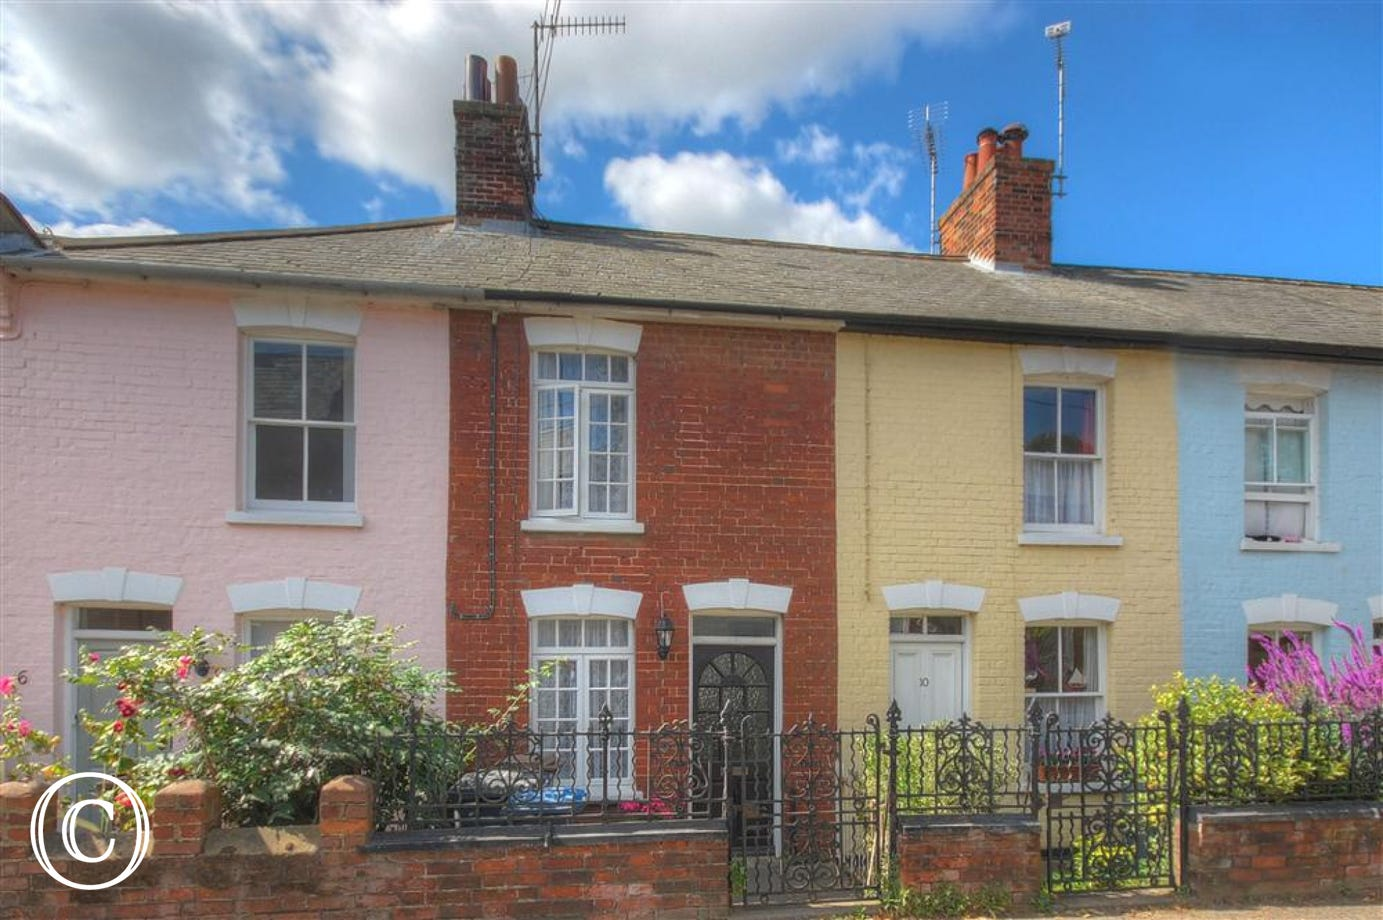 This quaint Cottage for 3 people is on Park Road in Aldeburgh.